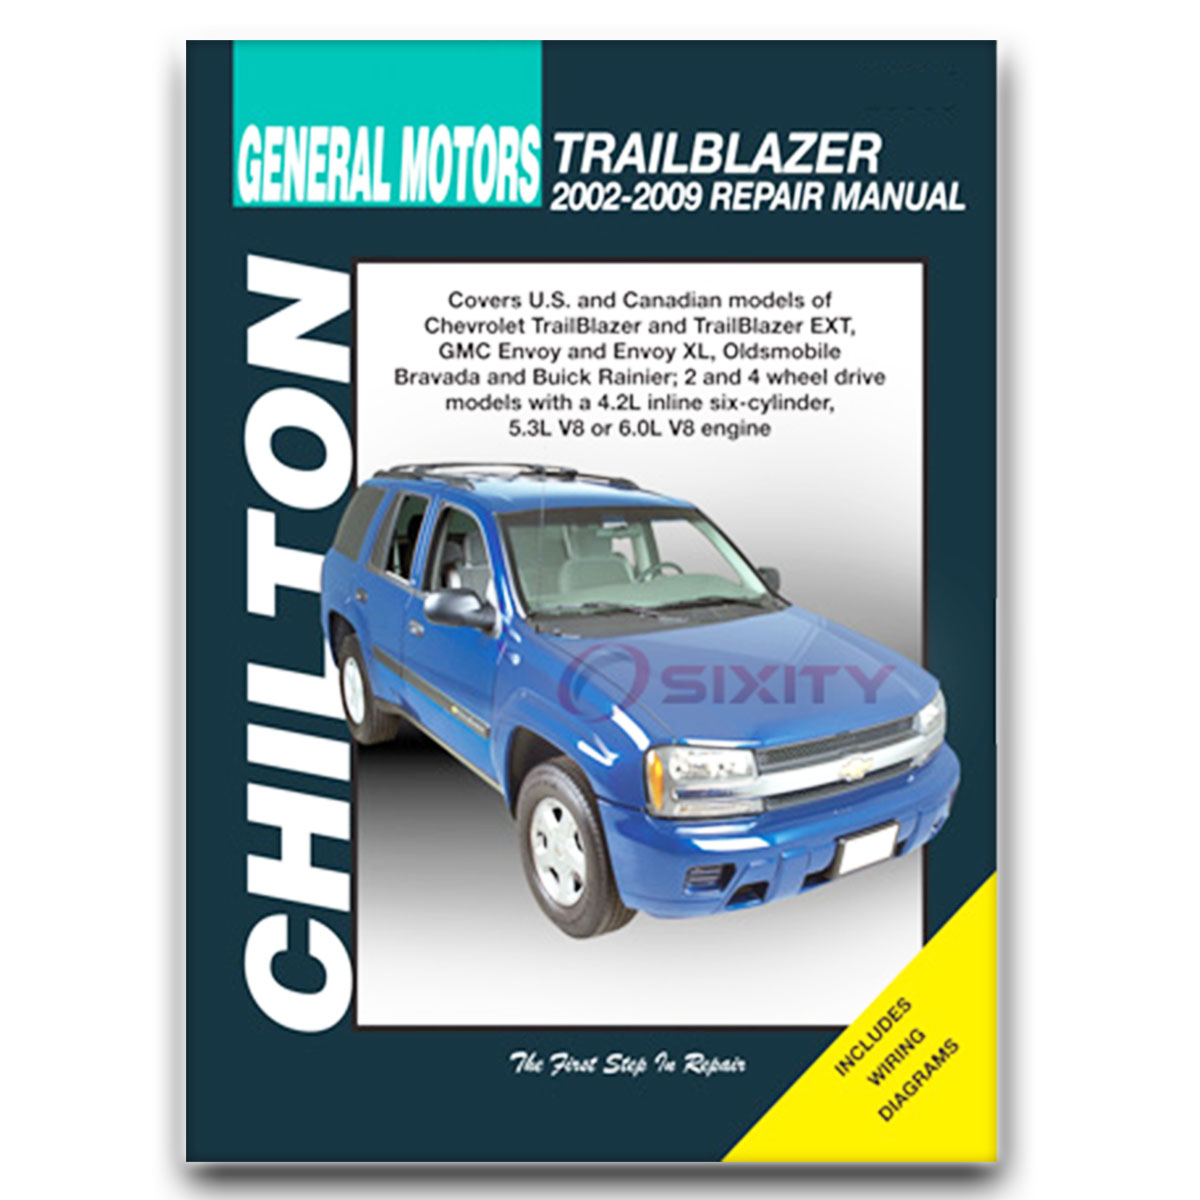 2004 buick rainier service manual browse manual guides buick rainier chilton repair manual cxl plus shop service garage rh ebay com 2004 buick rainier cxl 2004 buick rainier cxl fandeluxe